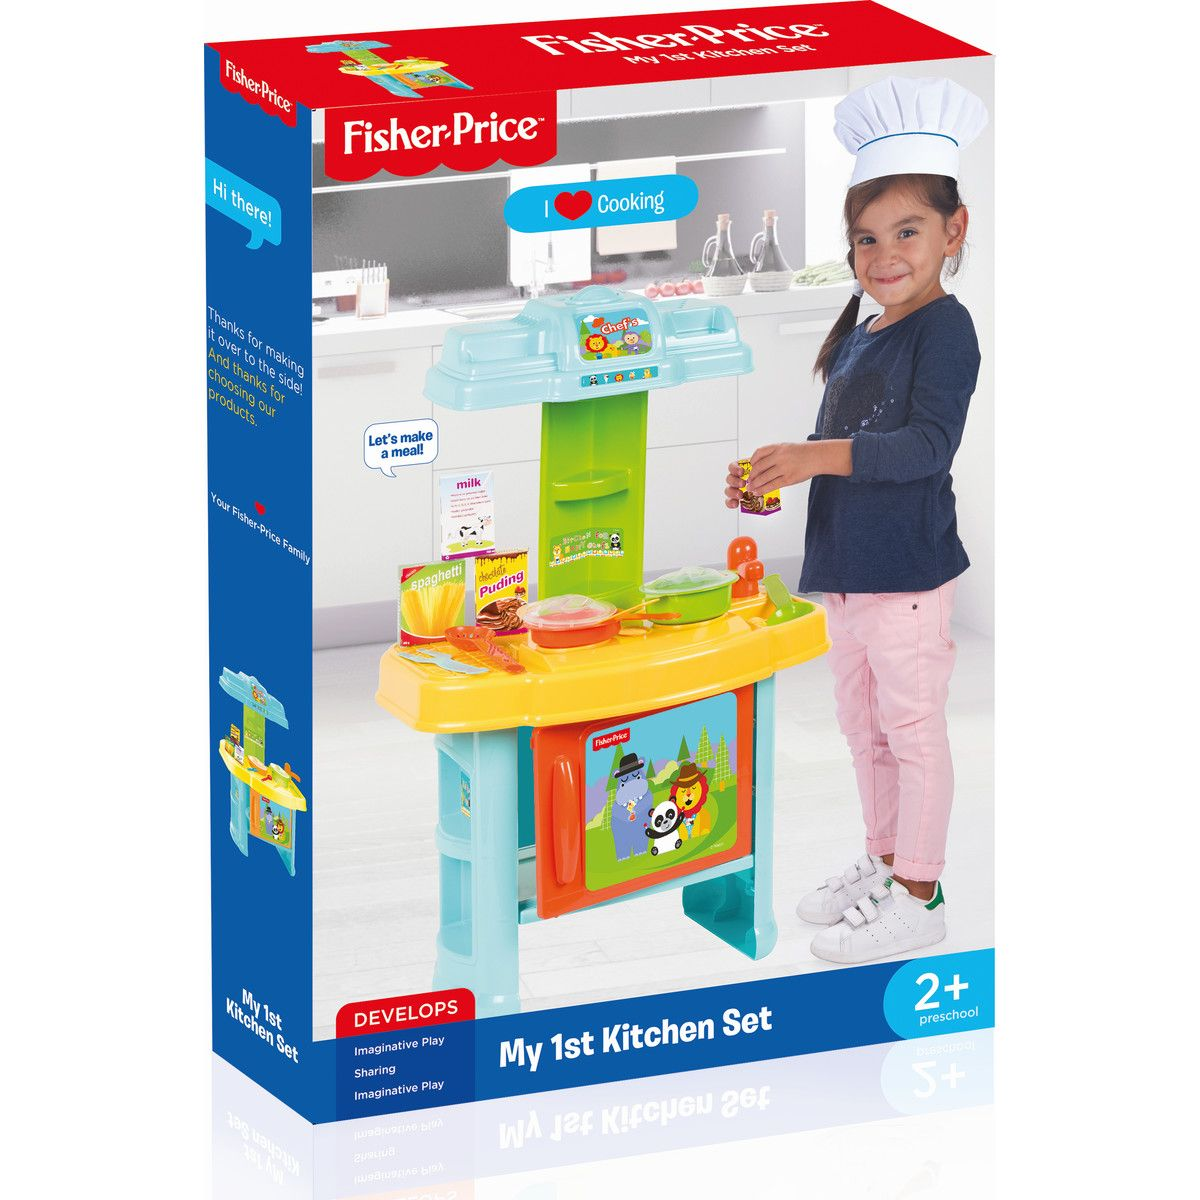 Fisher Price My 1st Kitchen Set Baby Kid Online Store Baby Gallery Baby Furniture Baby Accessories Toys Games Gadgets And More